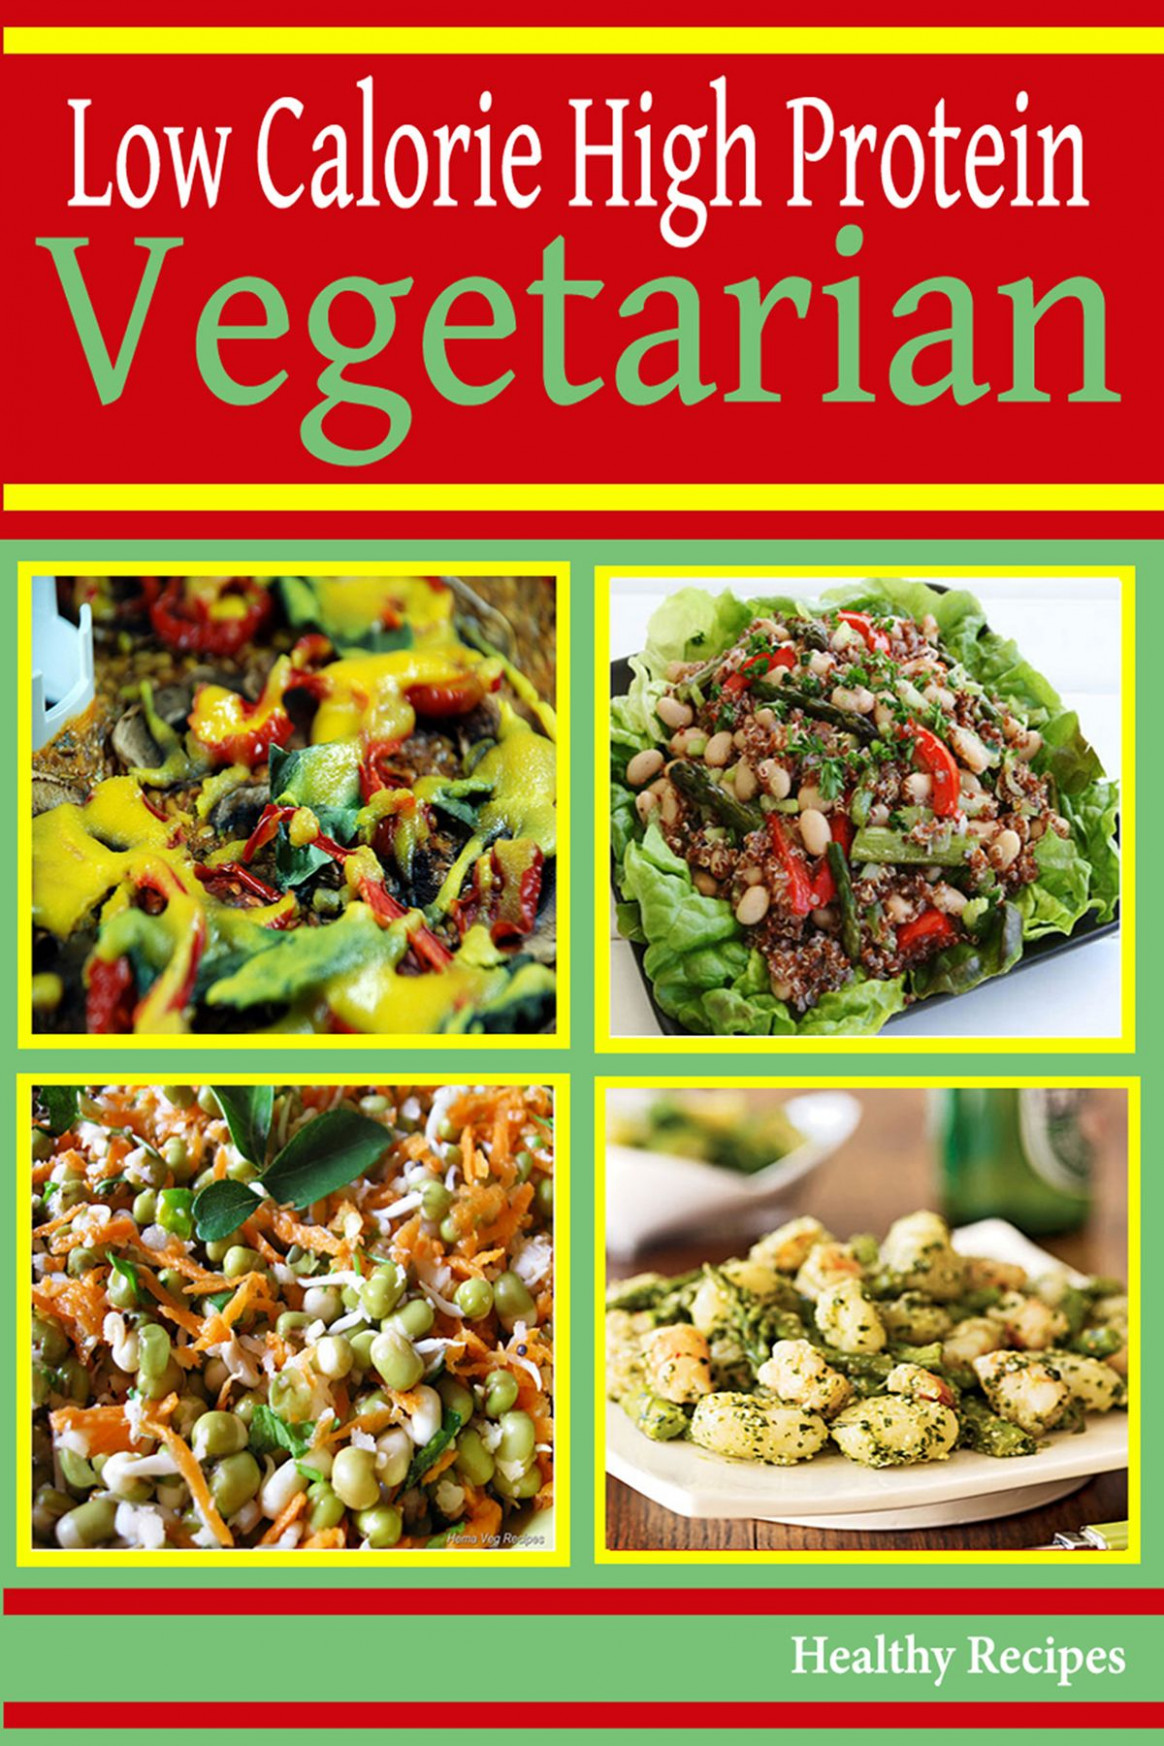 High Protein Low Calorie: Vegetarian Recipes ebook by Healthy Recipes -  Rakuten Kobo - recipes low calorie vegetarian